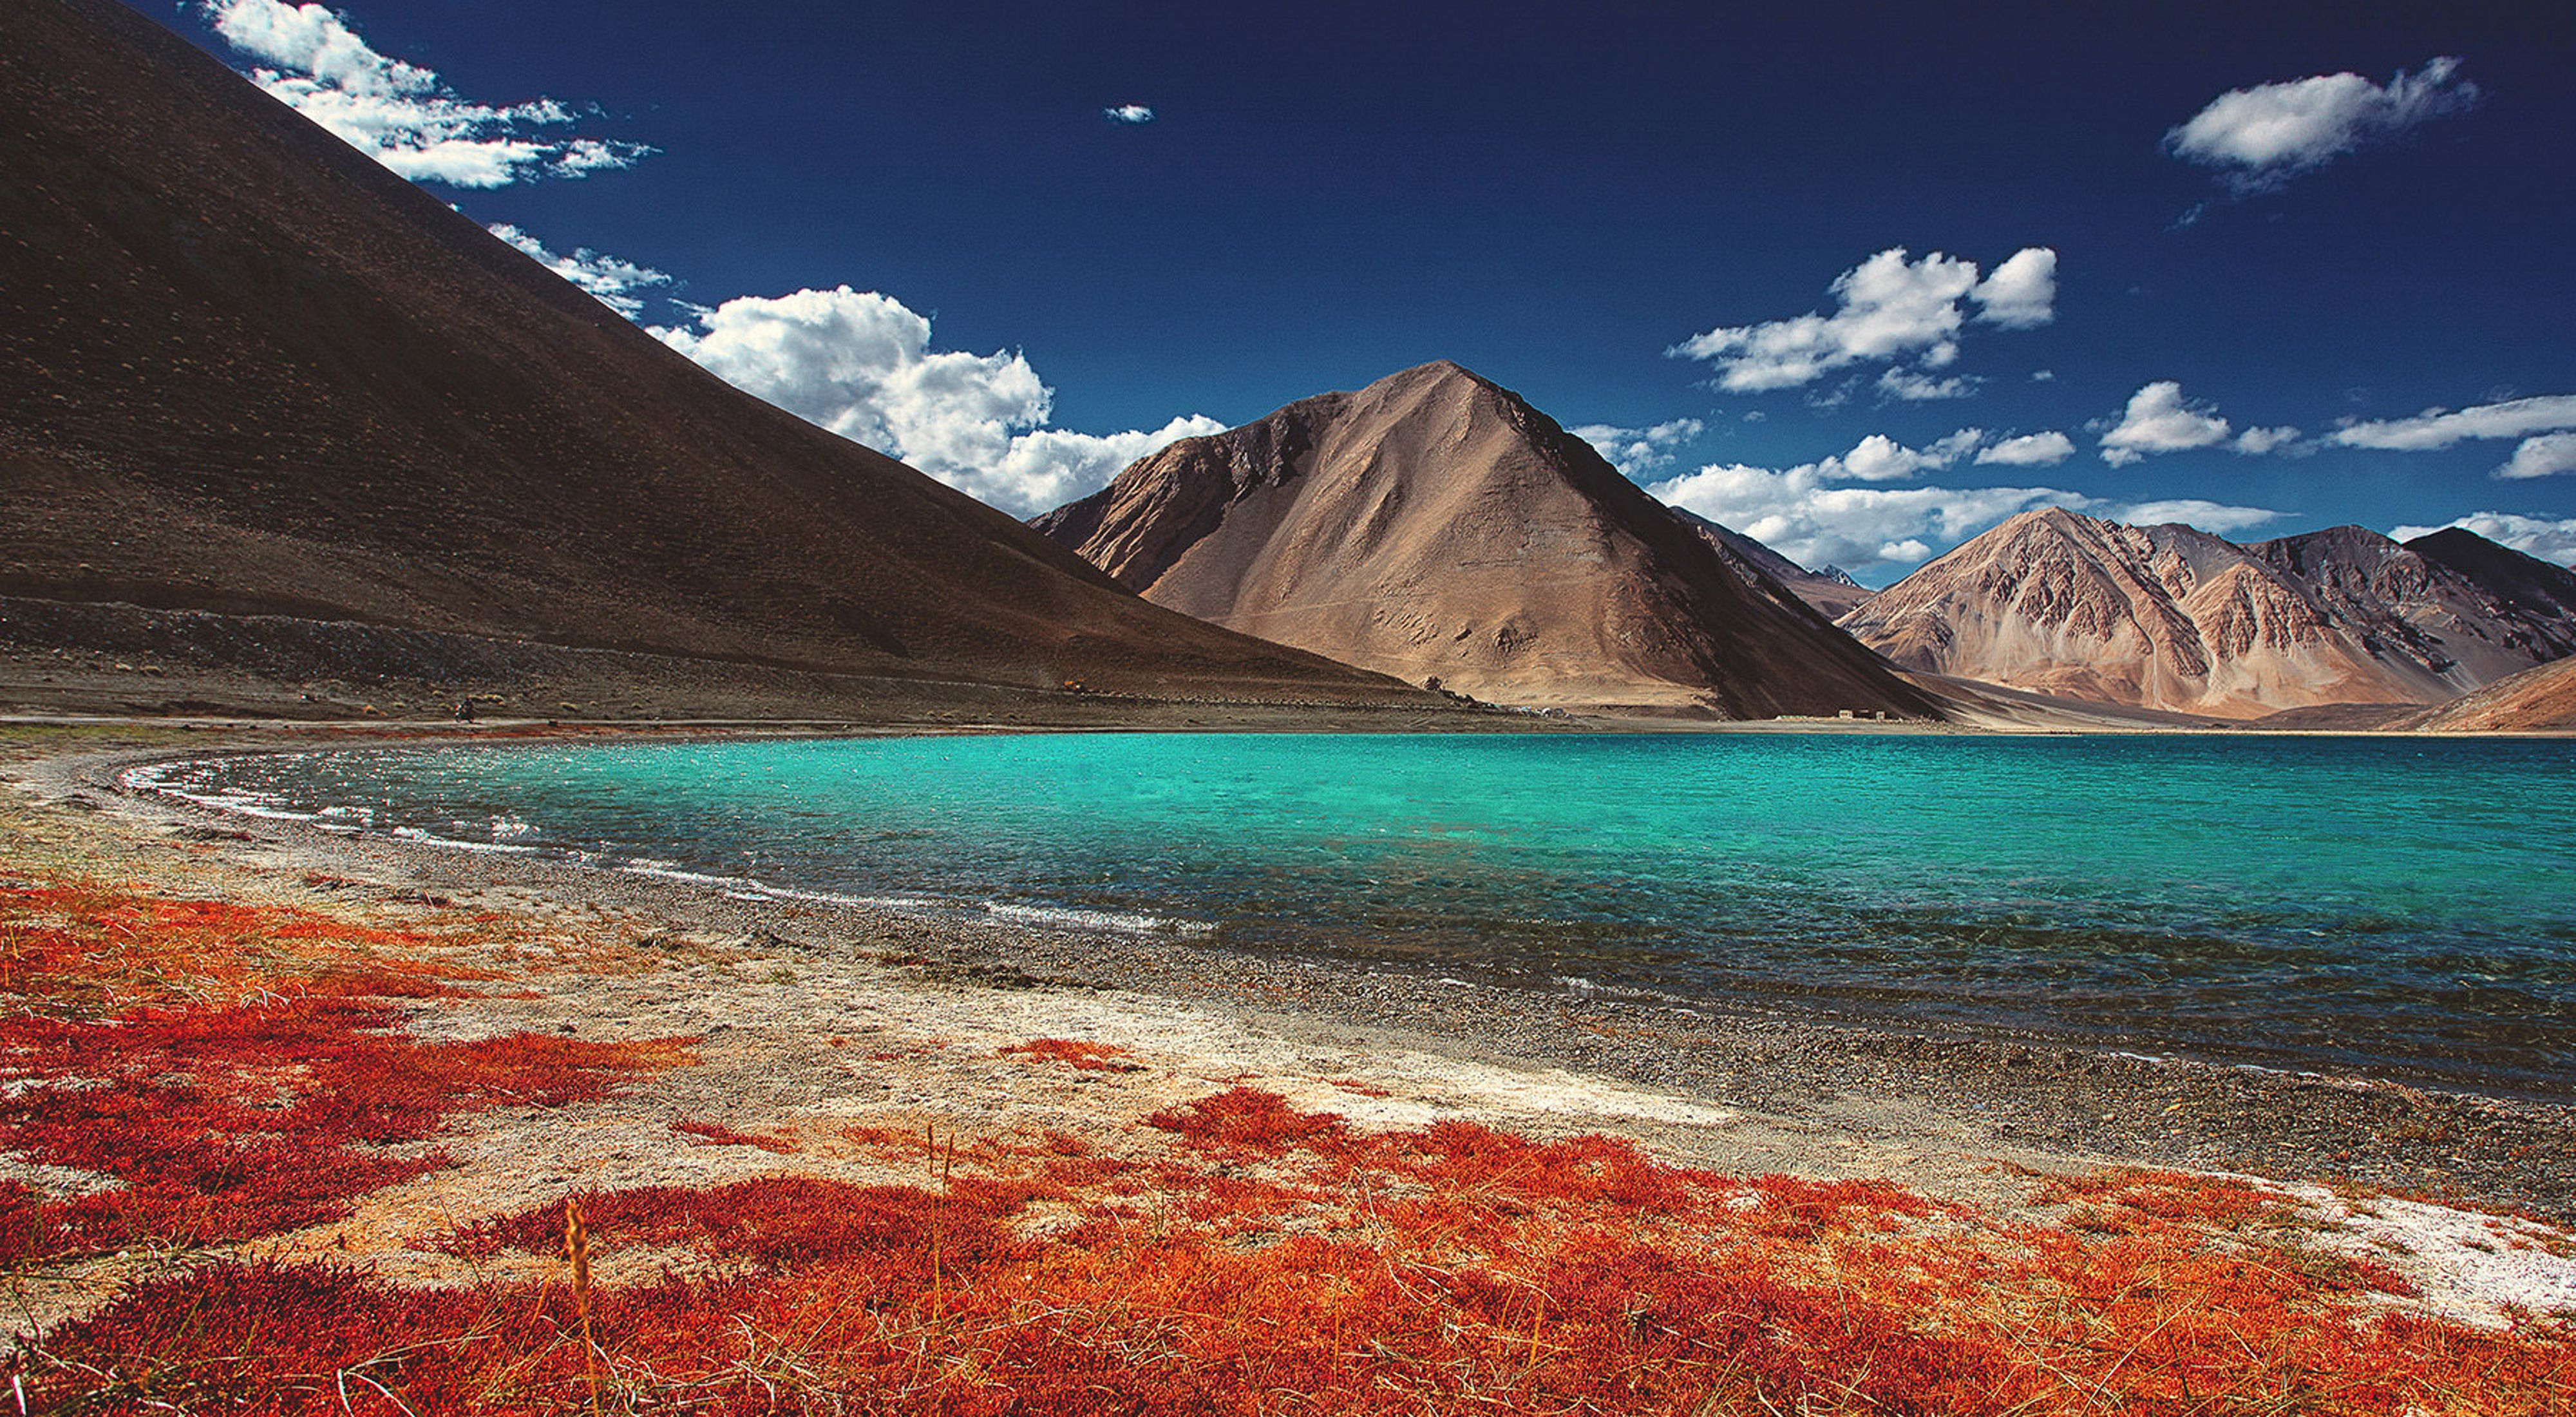 Pangong Lake, also known as Pangong Tso Lake, is situated in the Himalayan range approximately 140kms from Leh in Jammu and Kashmir, India.